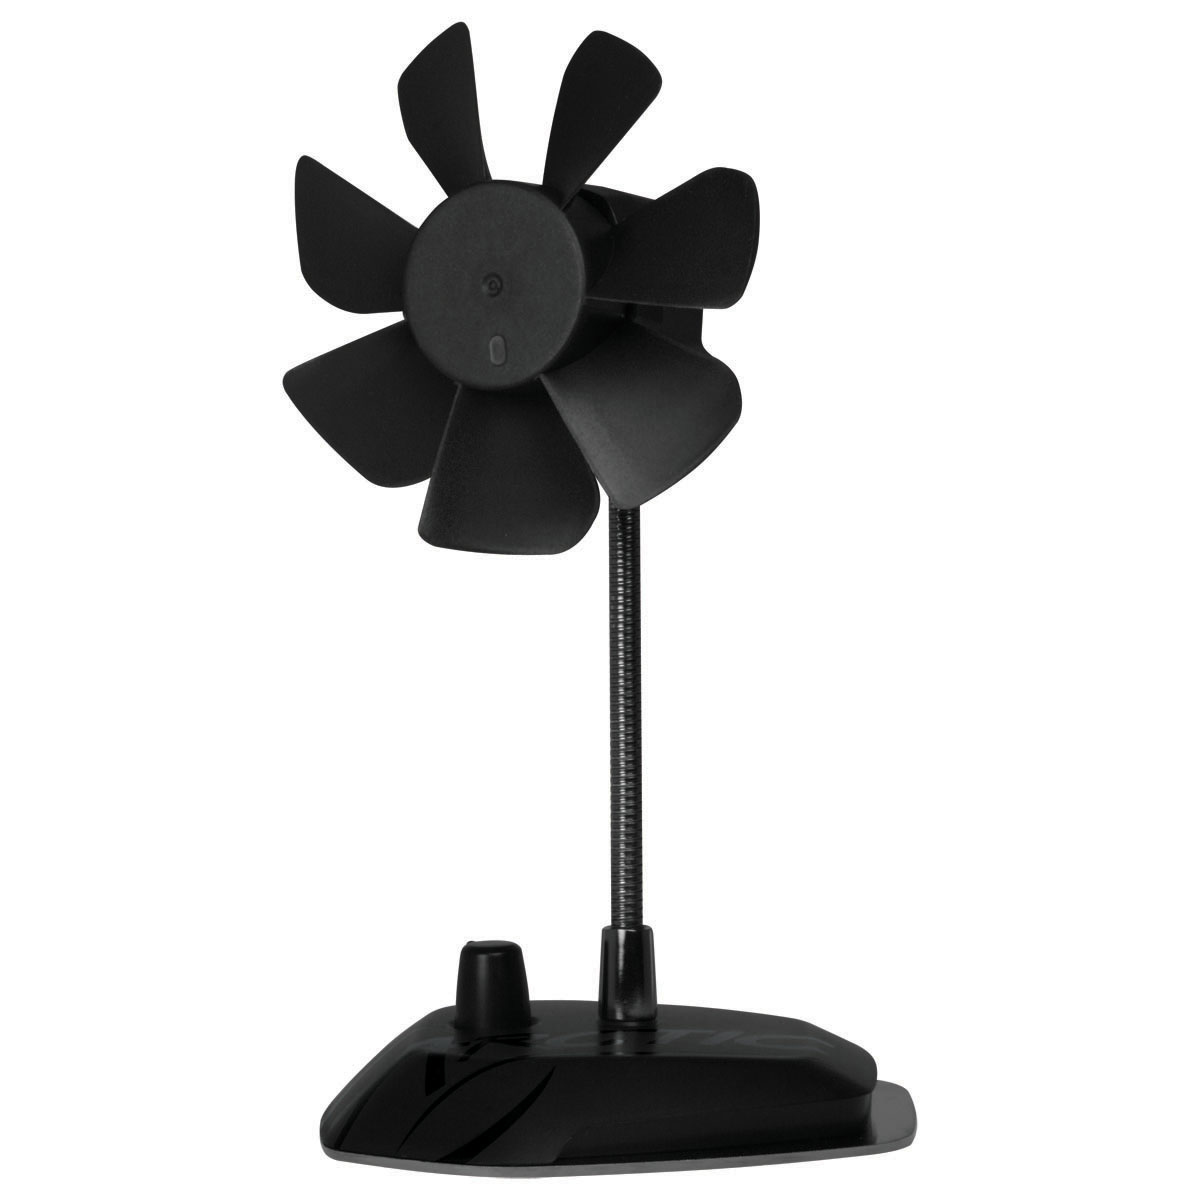 ABACO-BRZBK01-BL ARCTIC Breeze Color (Black) - USB Table Fan - Ent01